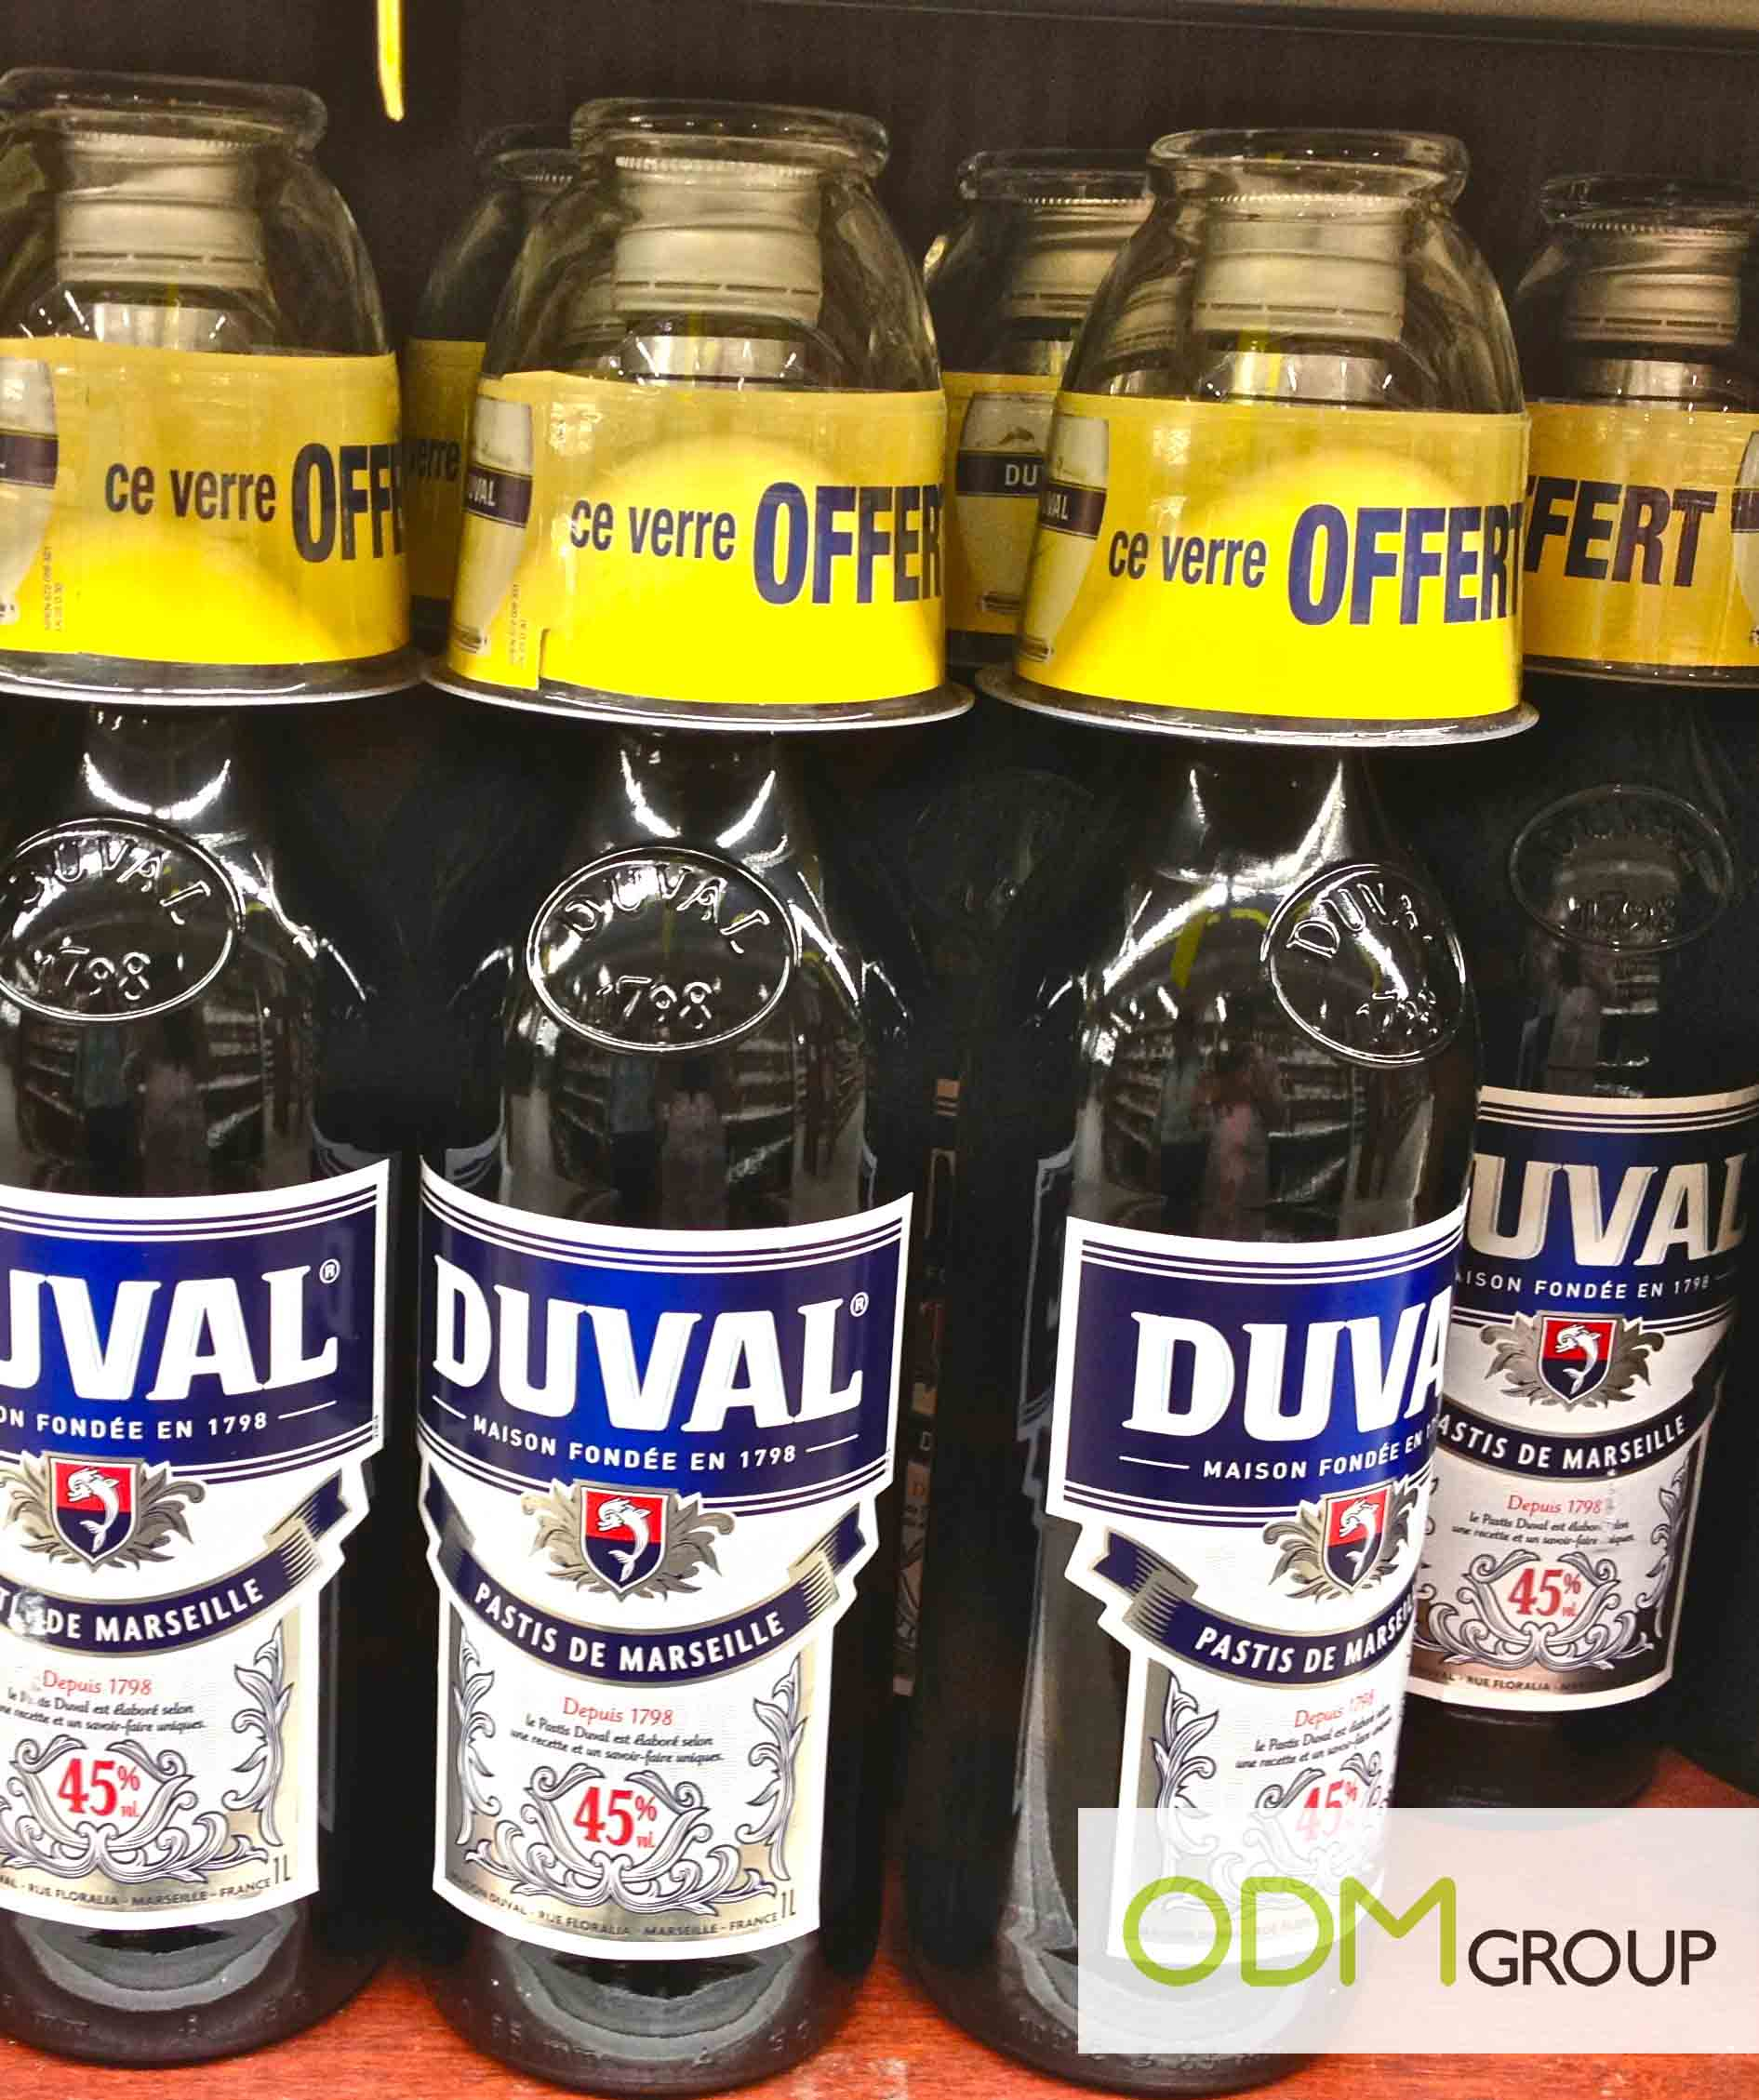 Duval Pastis - Branded Glasses